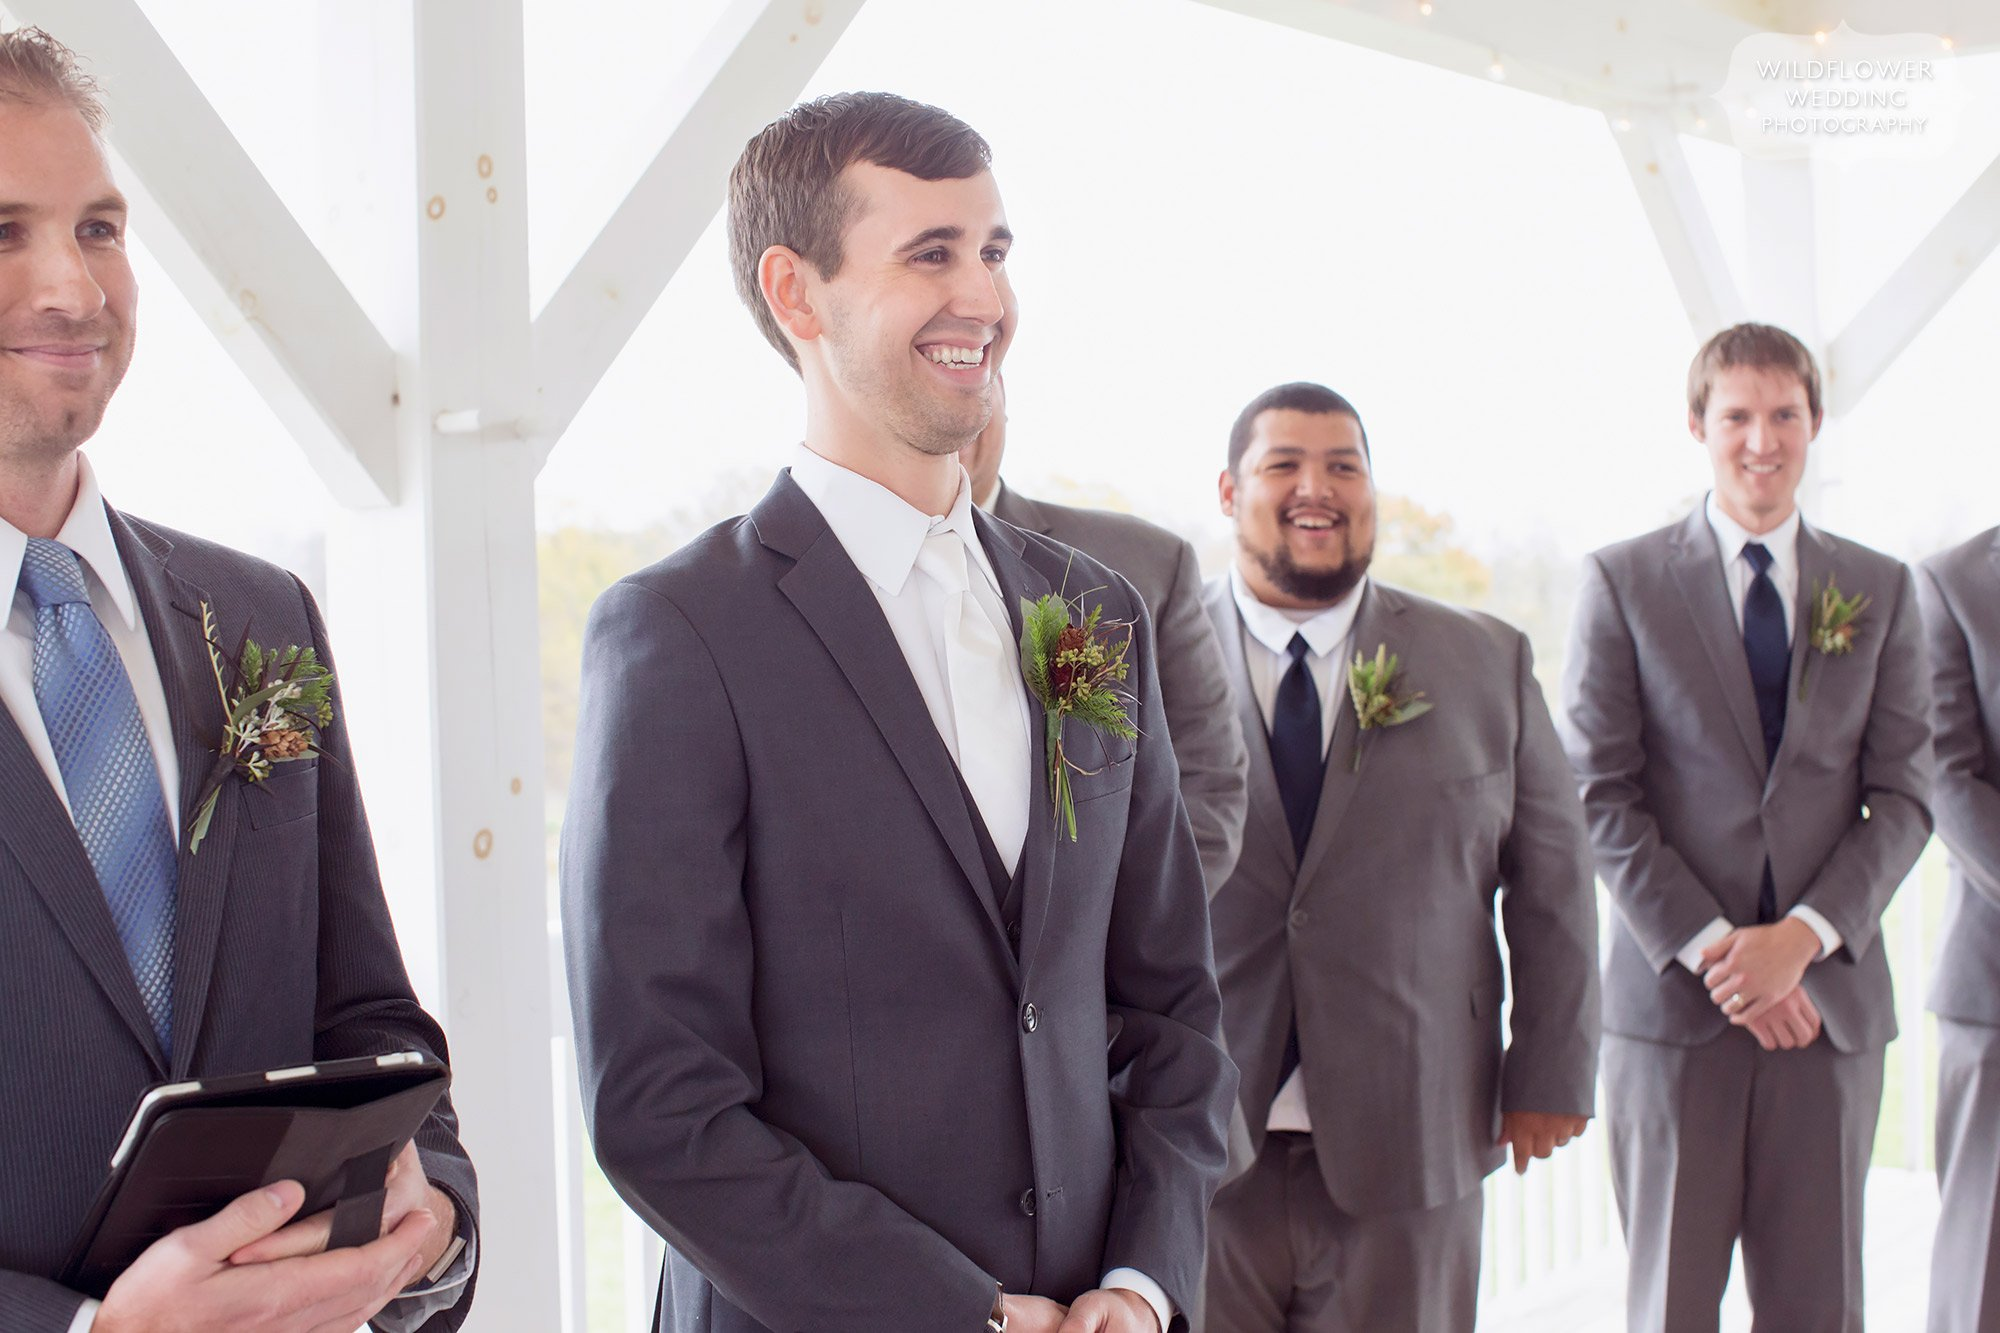 The groom watches the bride enter the outdoor deck ceremony at this barn wedding in MO.